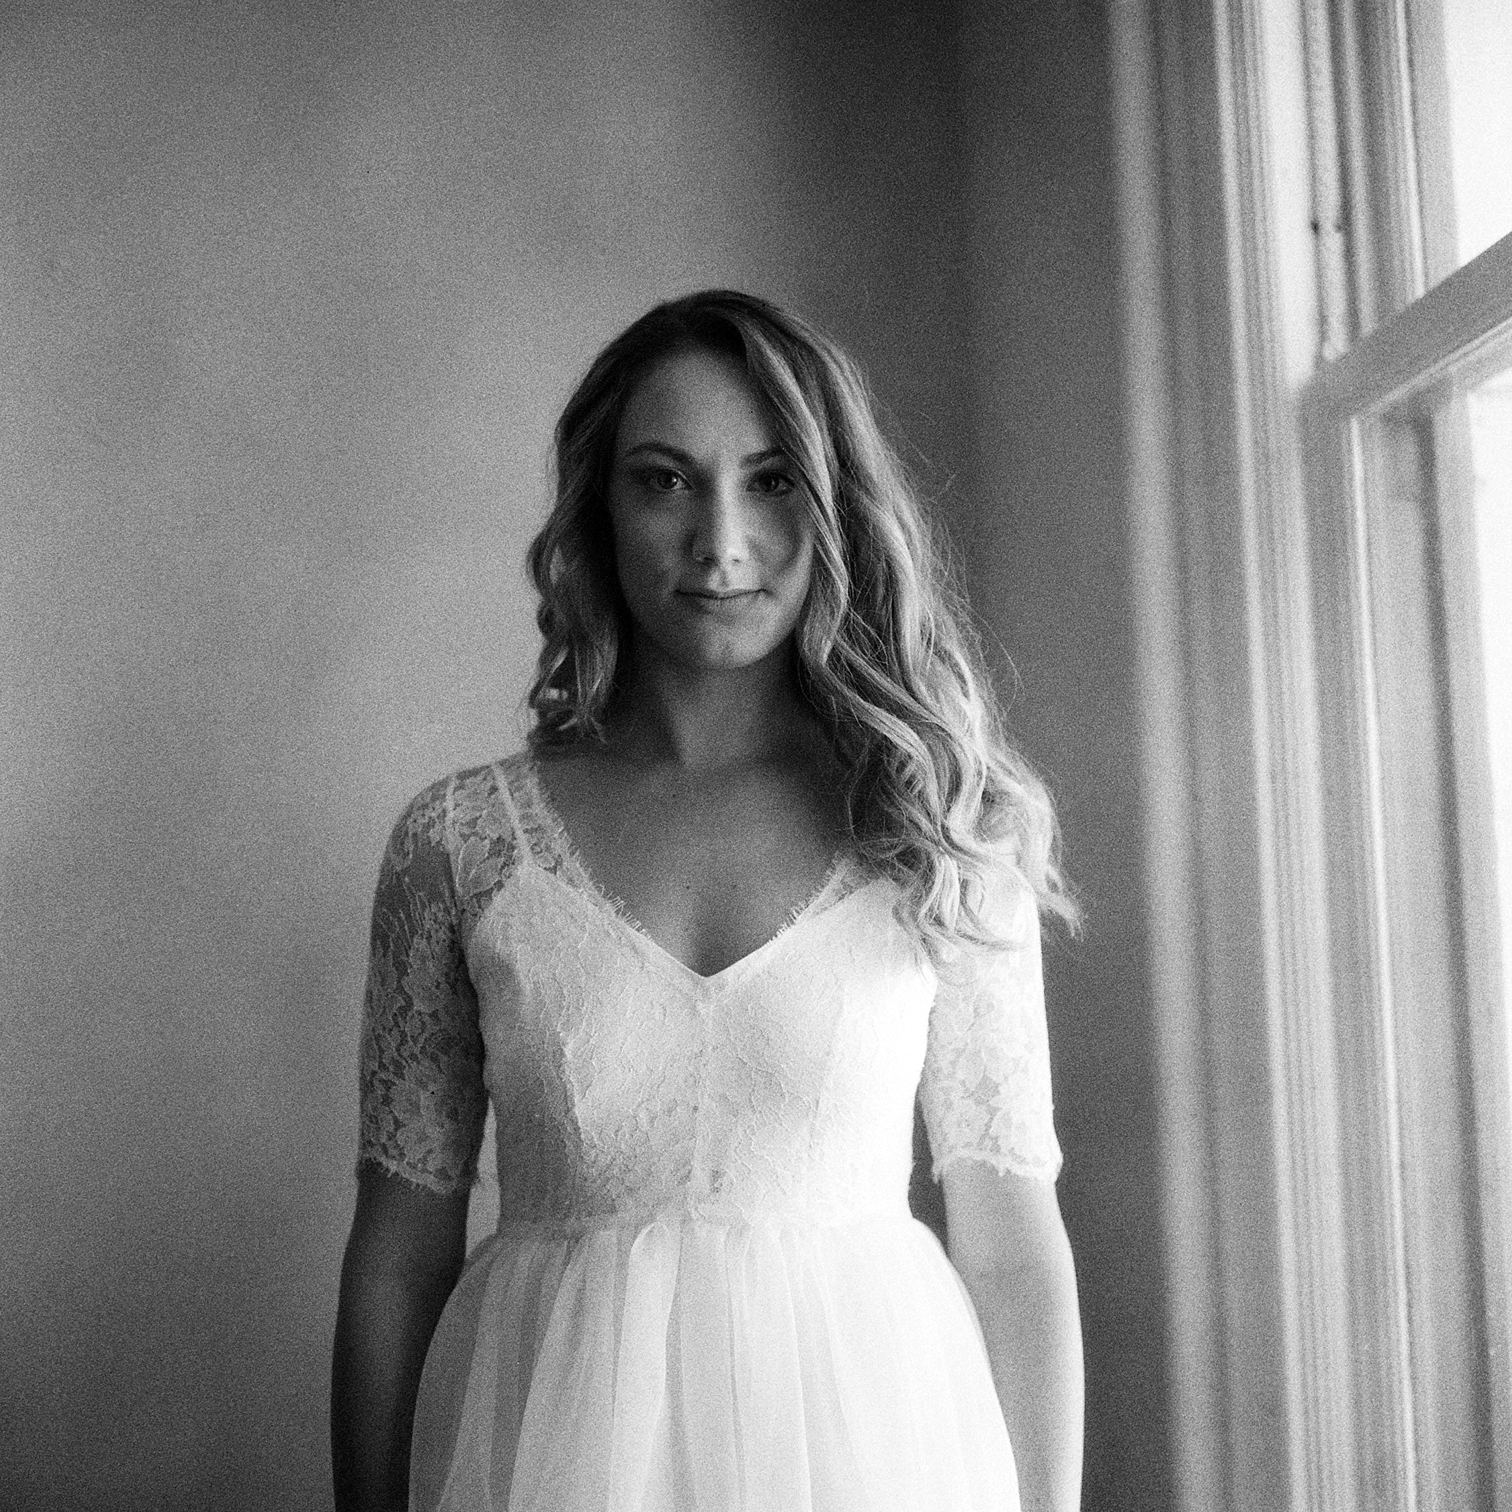 Bride Smiling In Window, Film Photographers, Black and White Wedding Photos, Couple Dancing, Colorado Photographers, Best Destination Weddings, Danielle DeFiore Photography